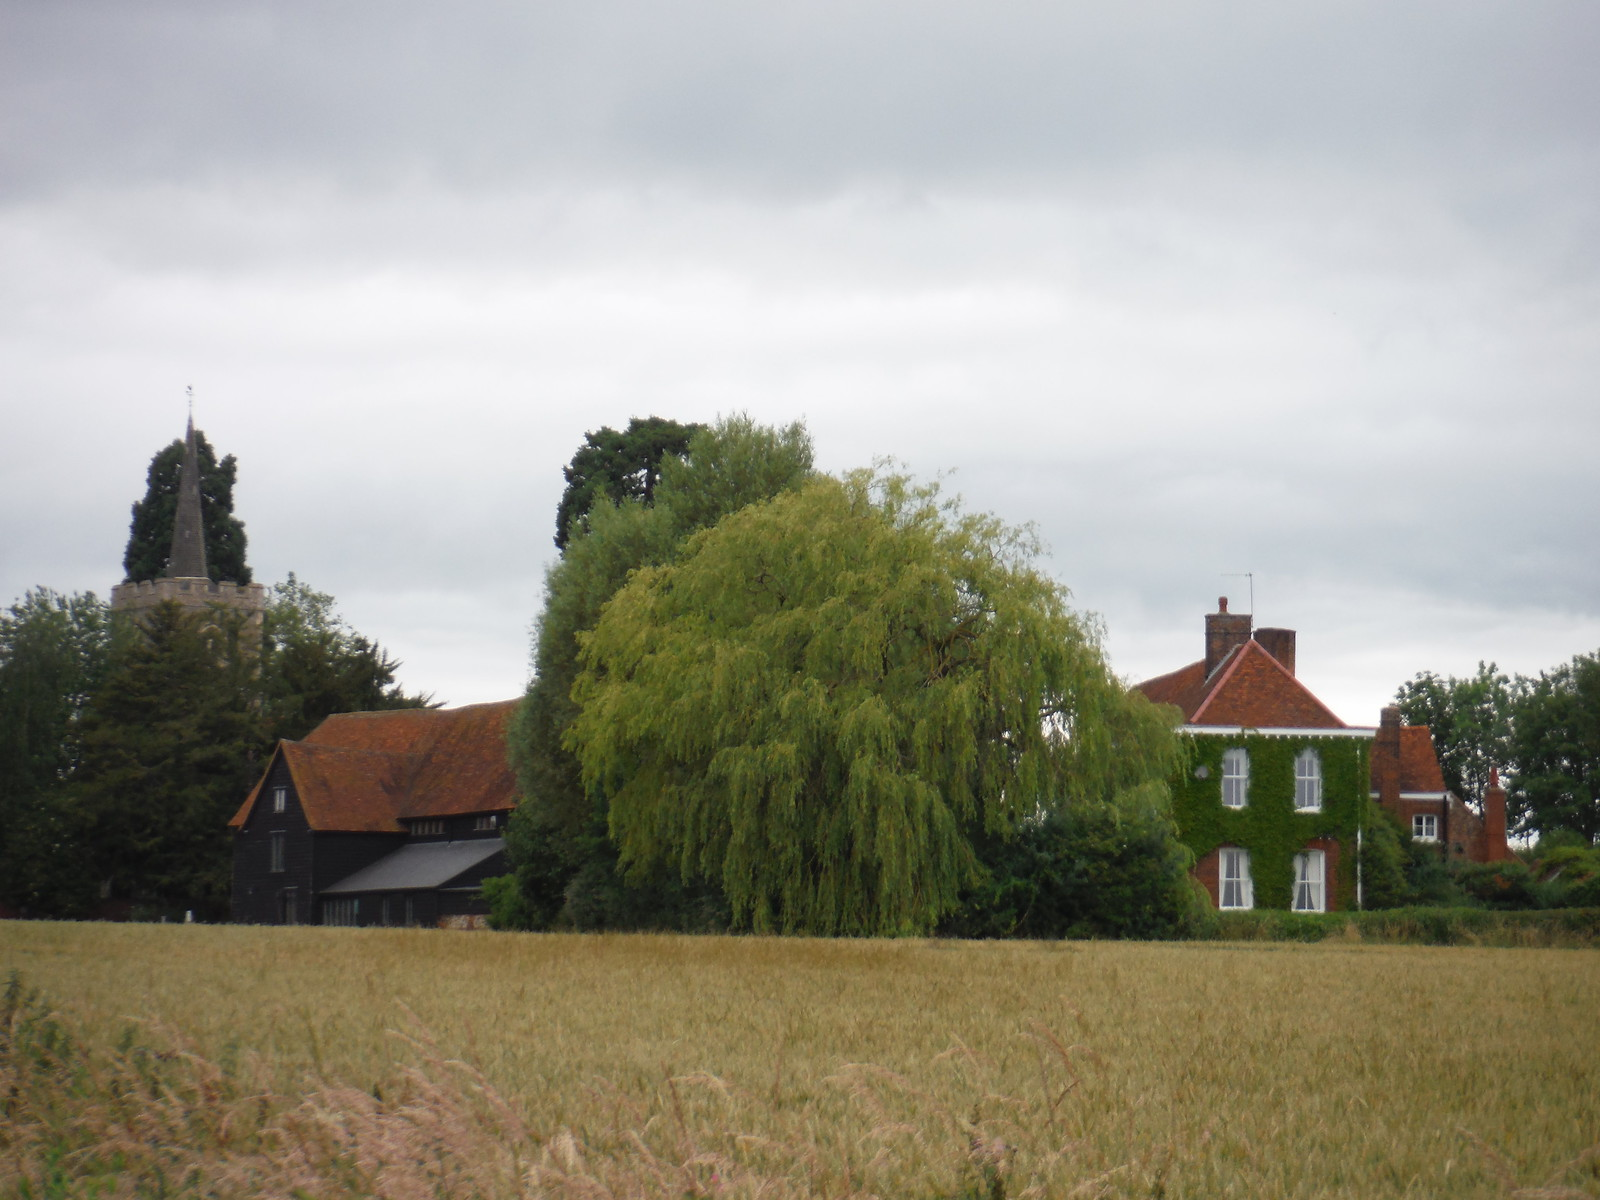 Thorley Hall and Church SWC Walk 210 - Sawbridgeworth to Bishop's Stortfort (via Henry Moore Foundation)